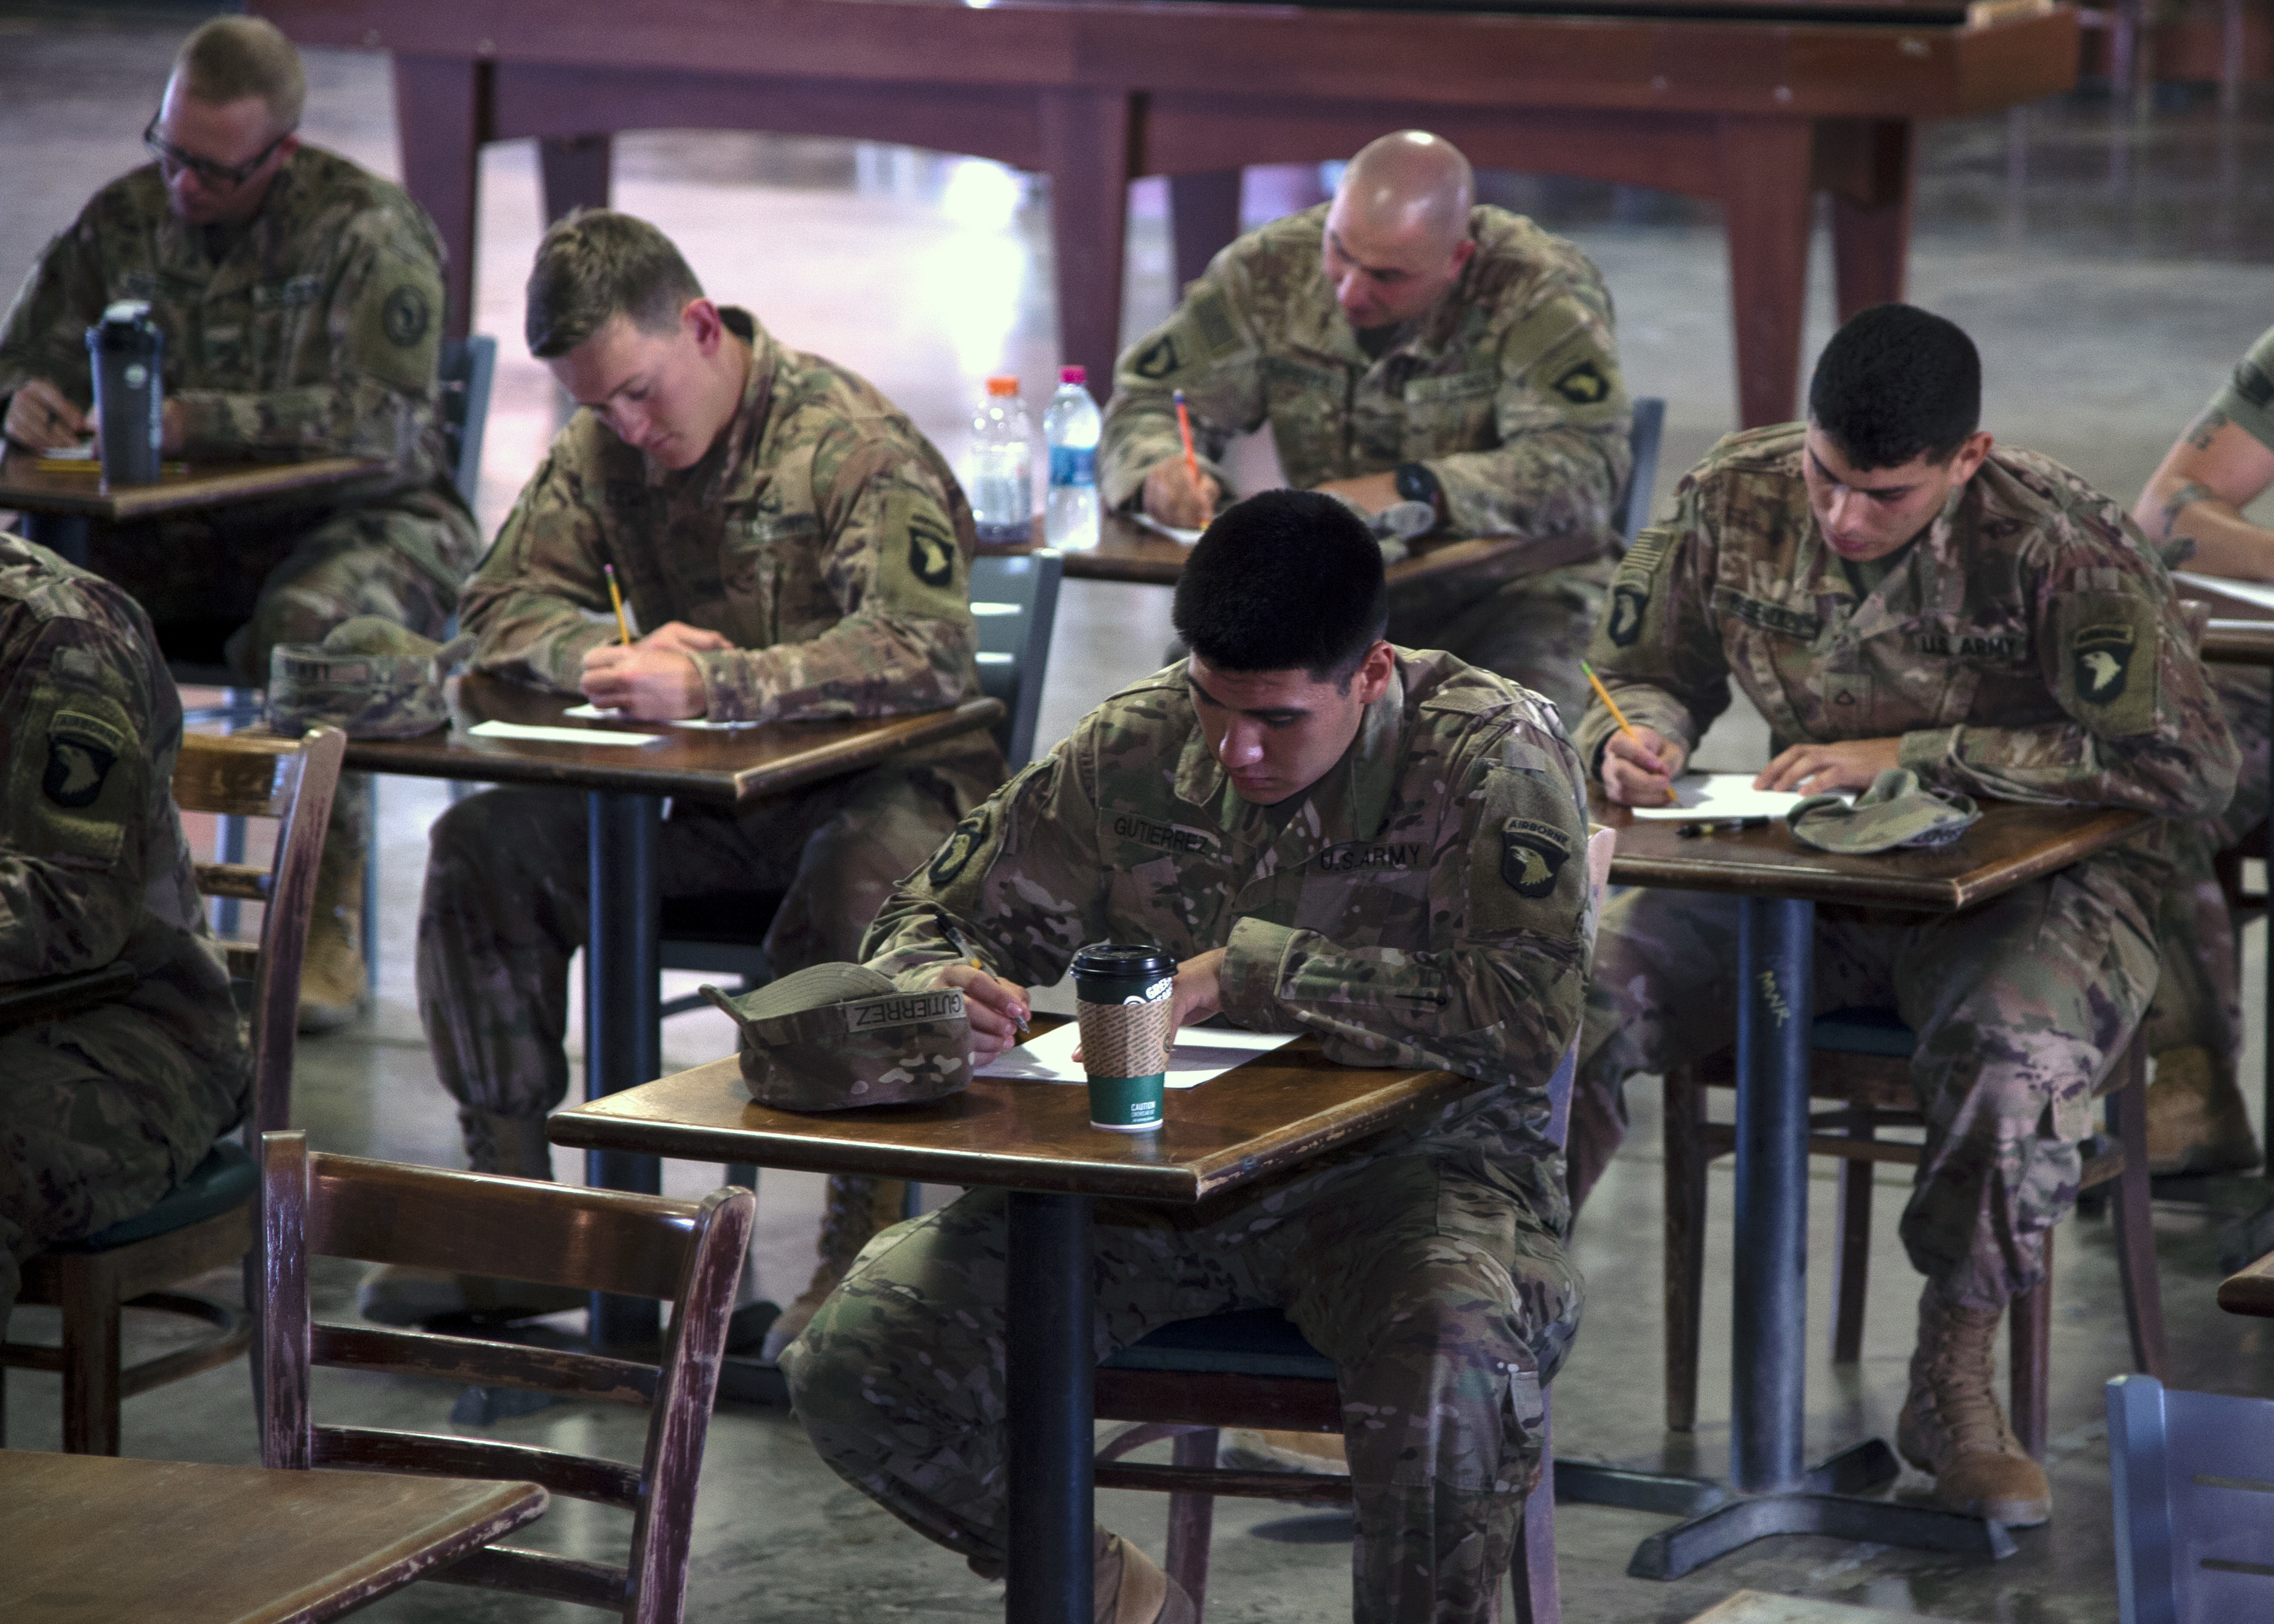 U.S. Army Soldiers assigned to Combined Joint Task Force-Horn of Africa (CJTF-HOA) write during the essay portion of the Joint Warrior Competition (JWC) at Camp Lemonnier, Djibouti, Feb. 26, 2019. The JWC was open to U.S. service members assigned to CJTF-HOA and Camp Lemonnier, and consisted of a 6-mile ruck march with participants carrying bags that weighed no less than 35 pounds, a timed first-aid administration challenge, a timed weapons disassembly and reassembly challenge, a timed essay writing contest, a joint physical training challenge and a combat fitness test. (U.S. Navy photo by Mass Communication Specialist 1st Class Nick Scott)